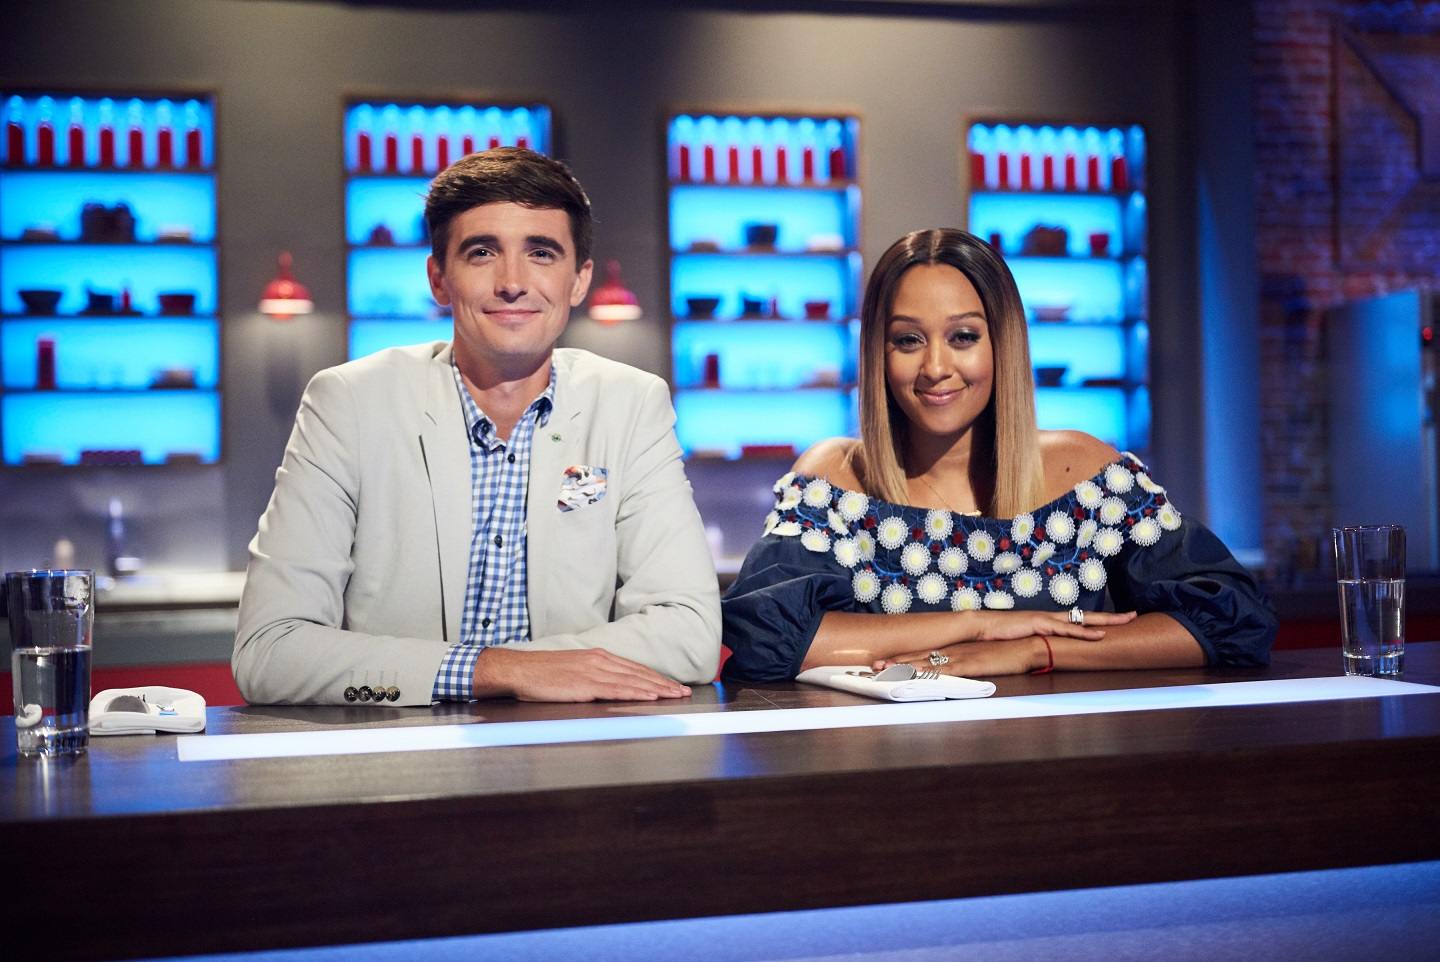 Food Network Star Kids | DonalSkehan.com, Co-host six episodes on Food Network. (2016)